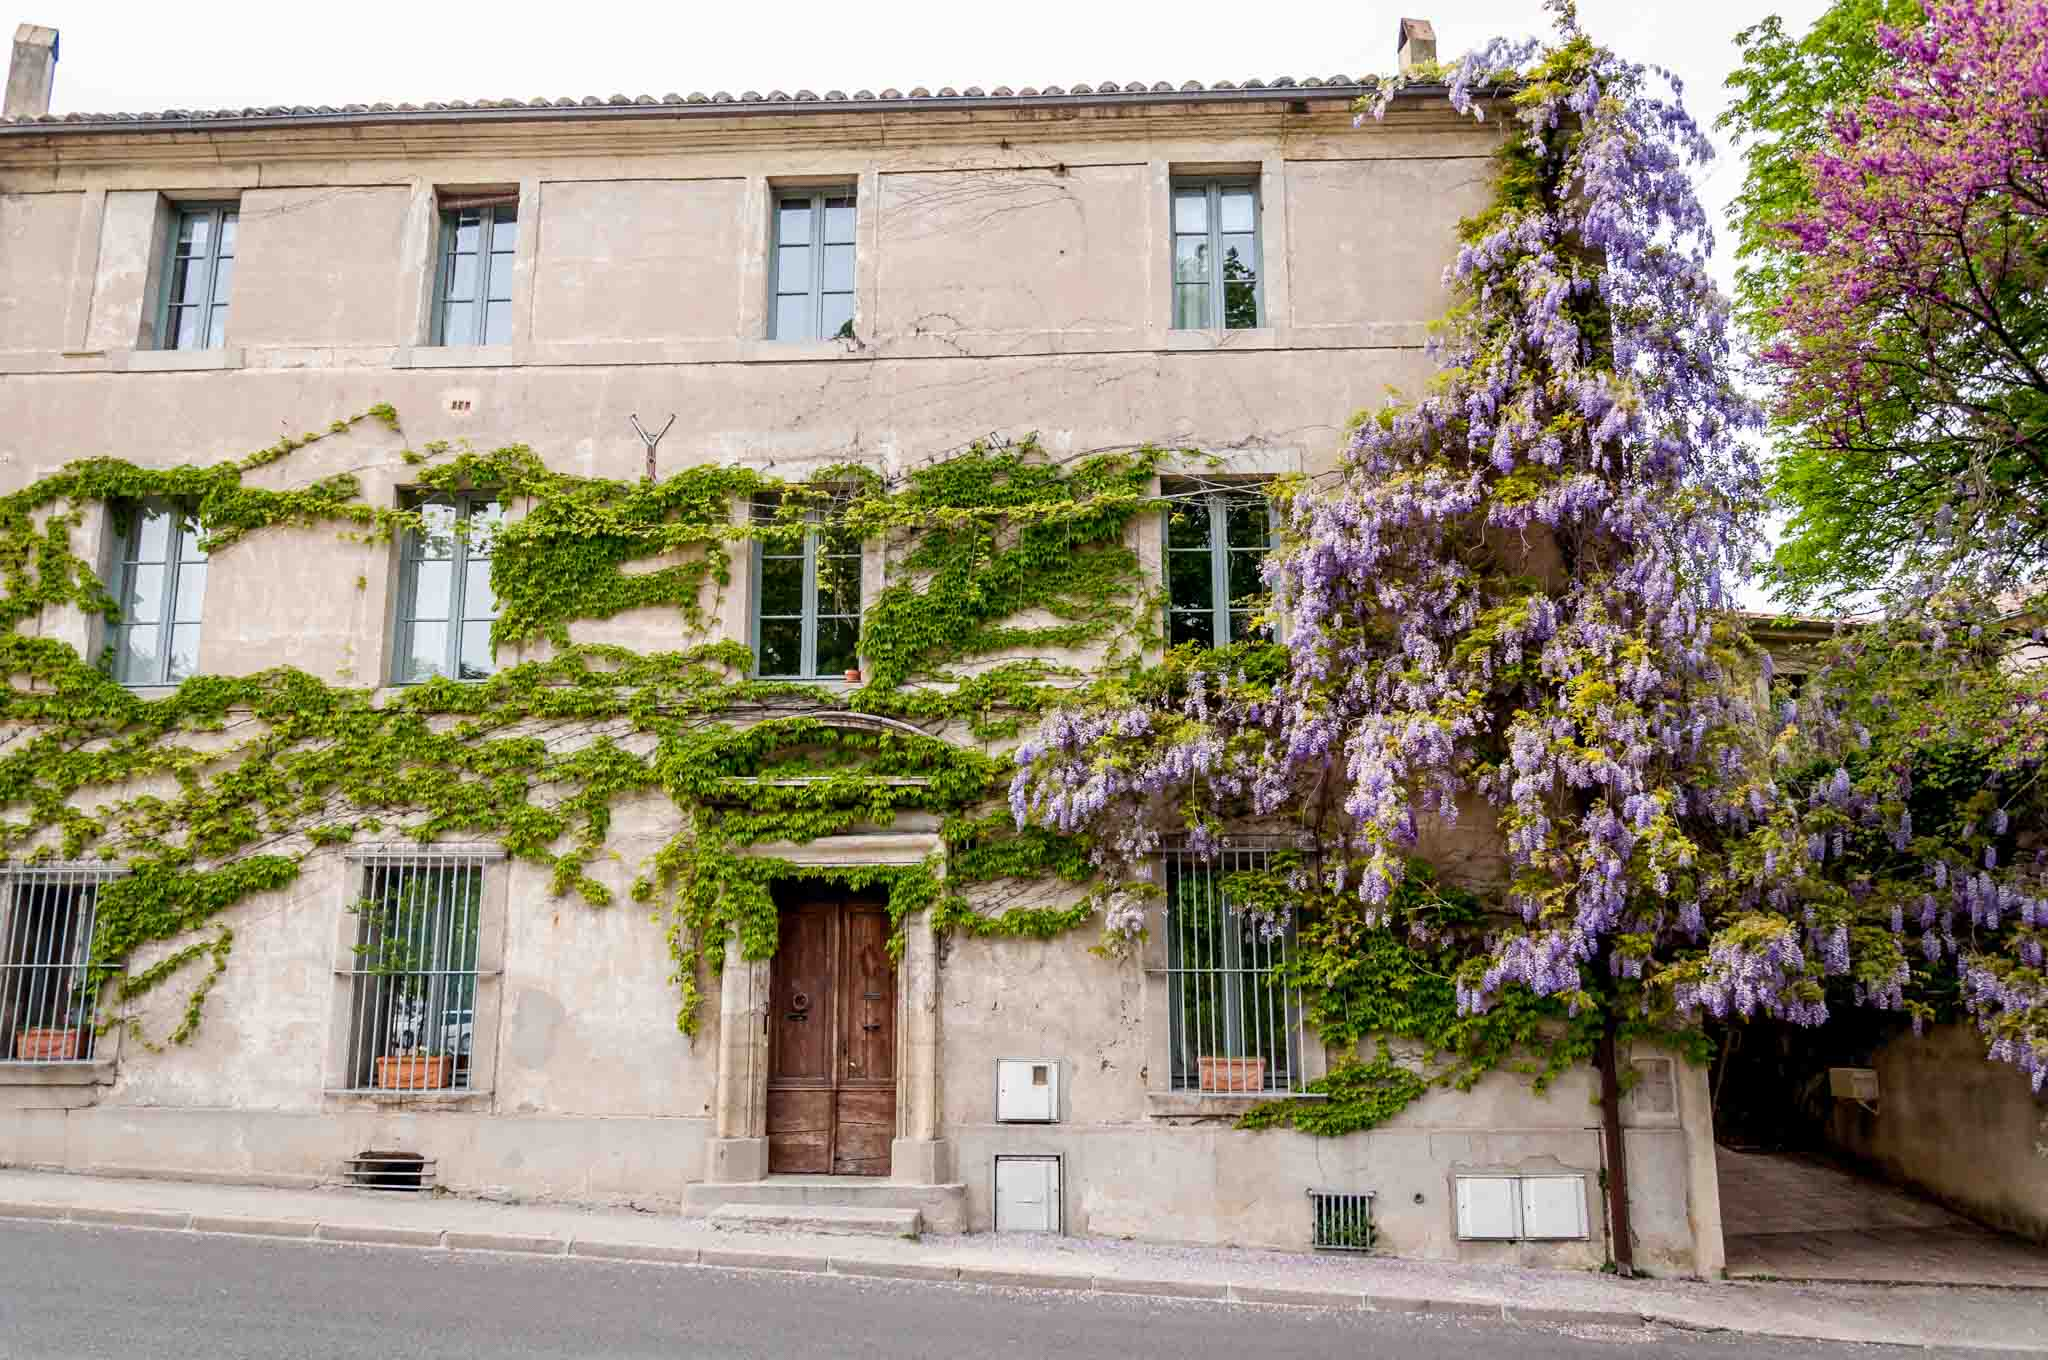 Building covered in ivy and wisteria